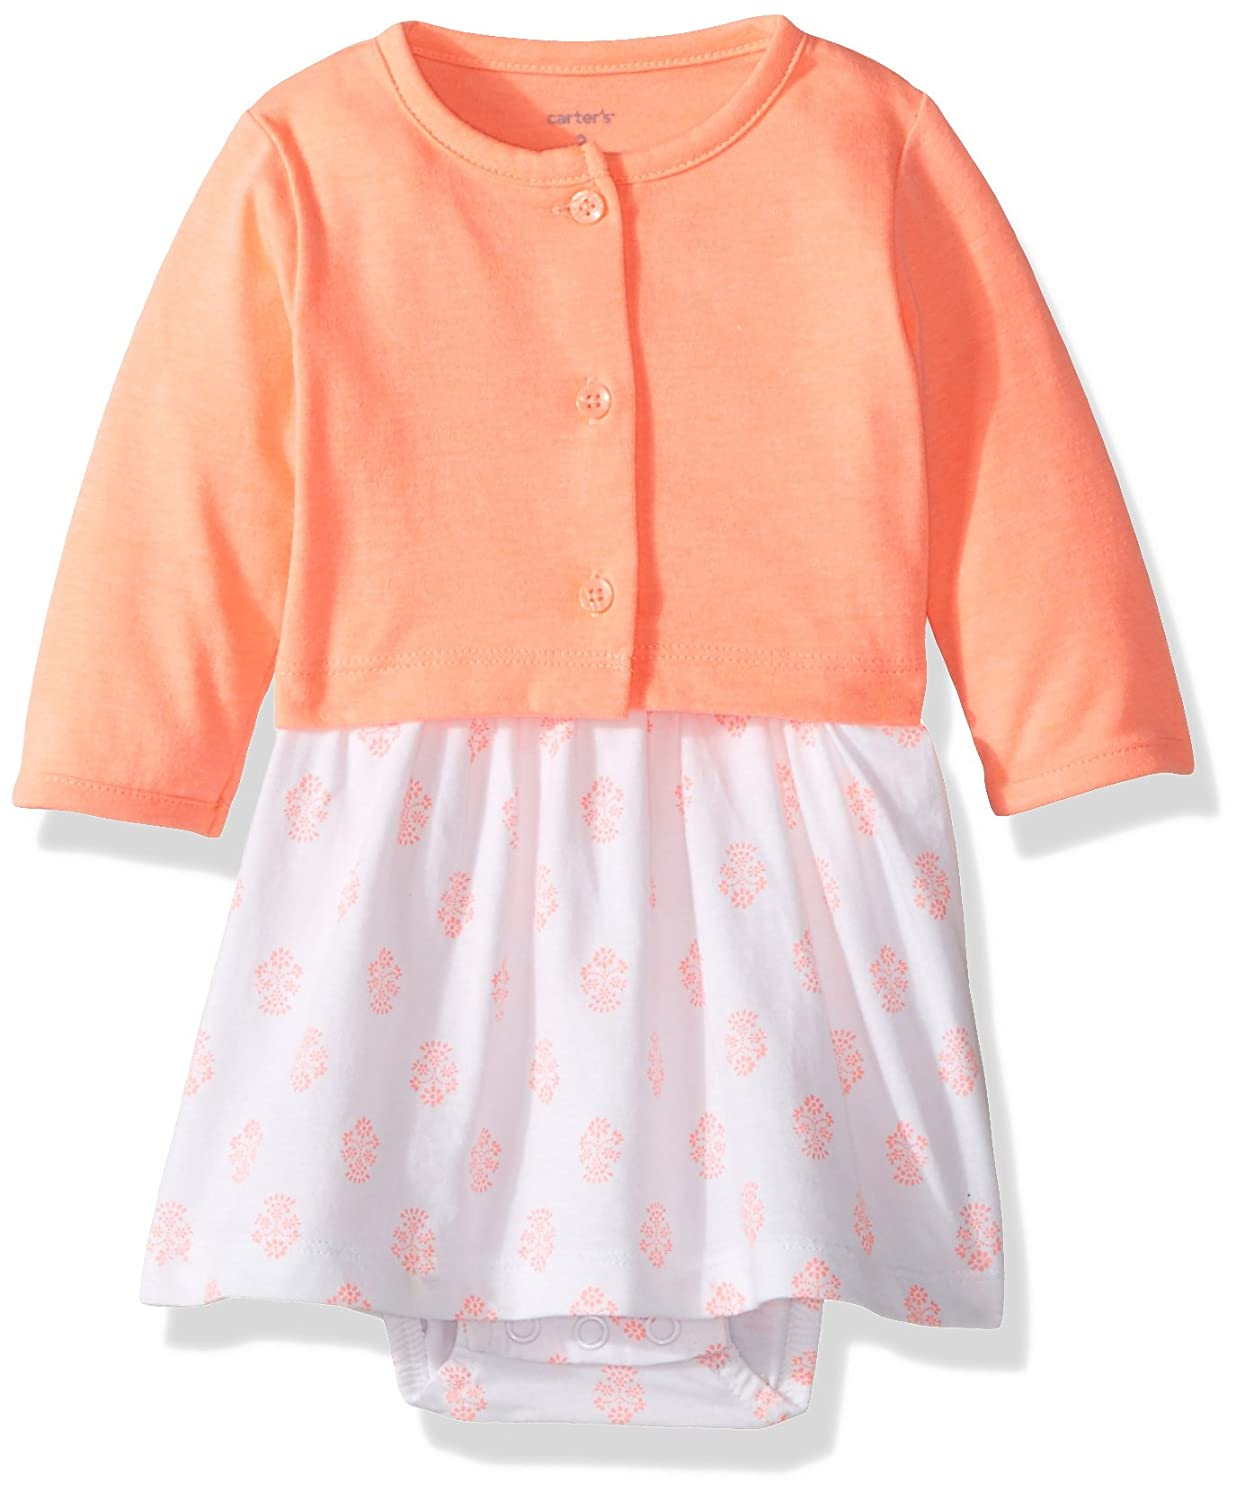 Carters Baby-Girls Baby Dress Sets